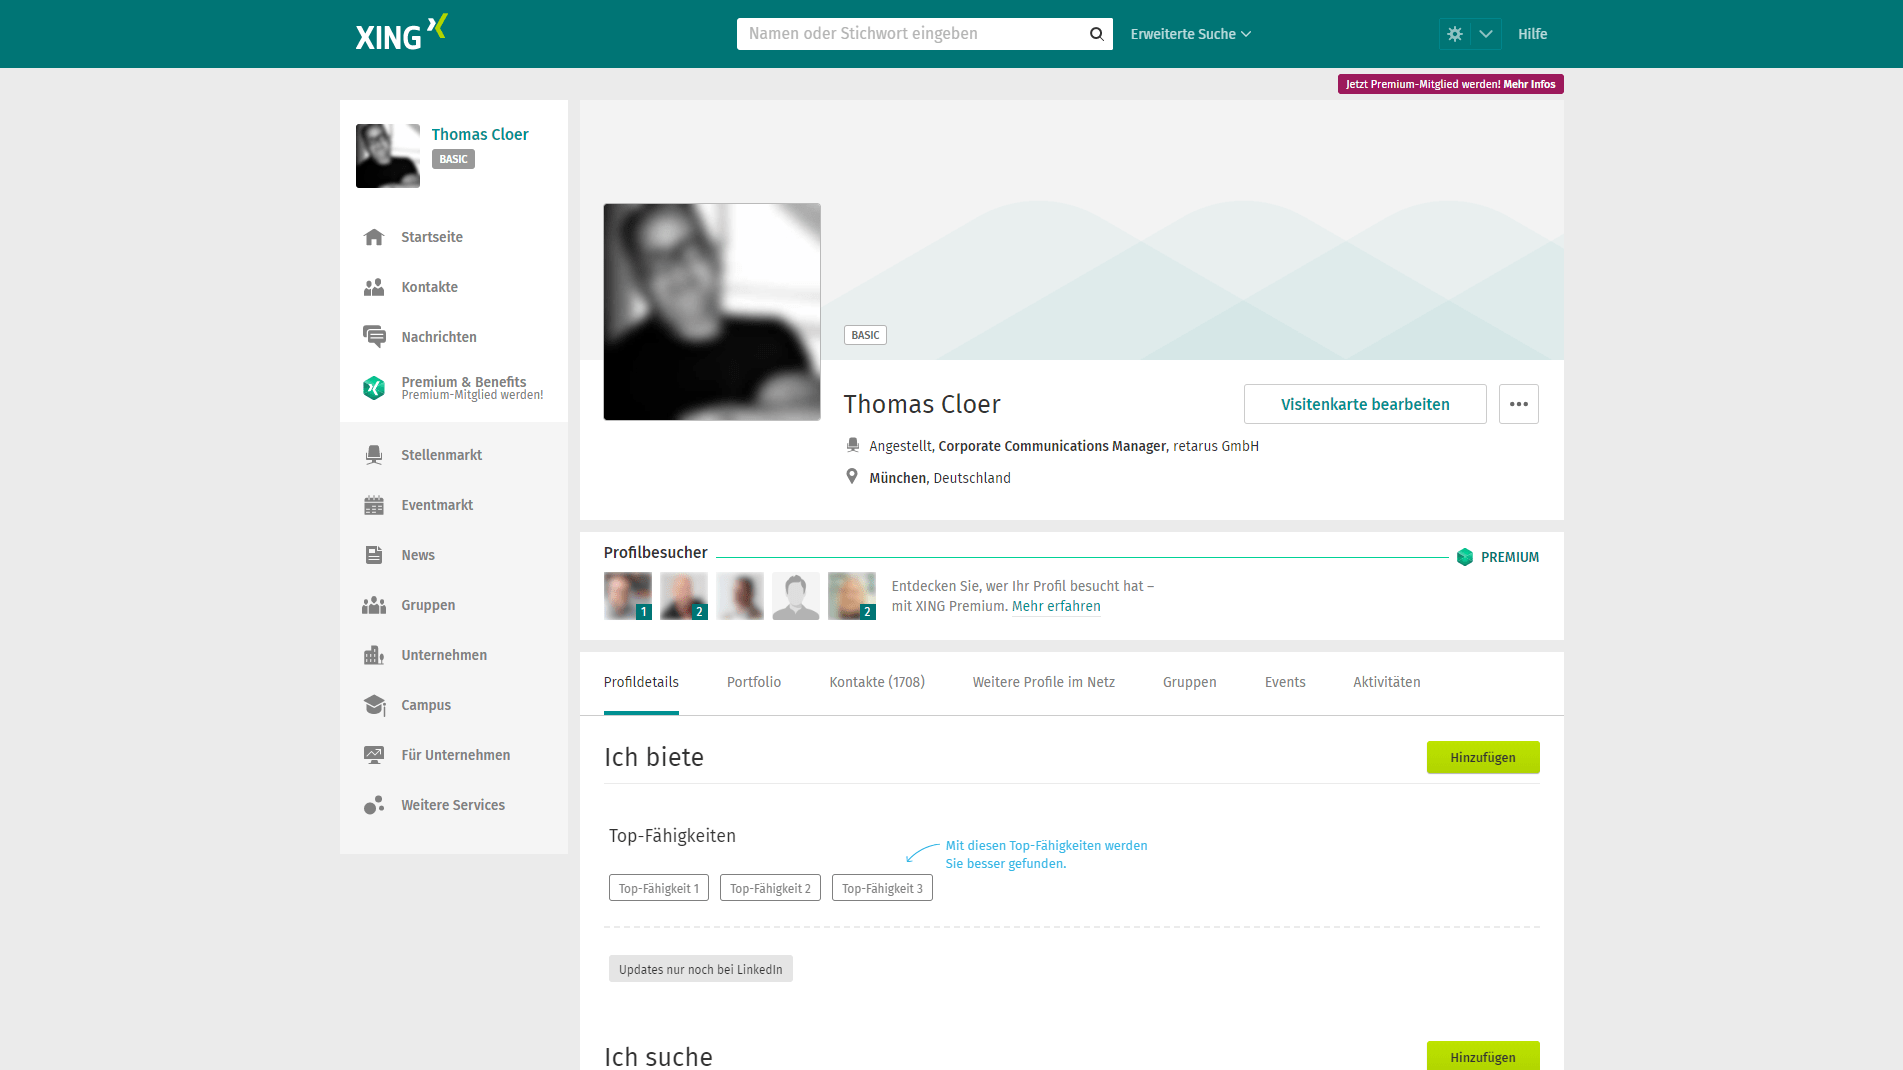 Xing-Profil Thomas Cloer, Screenshot